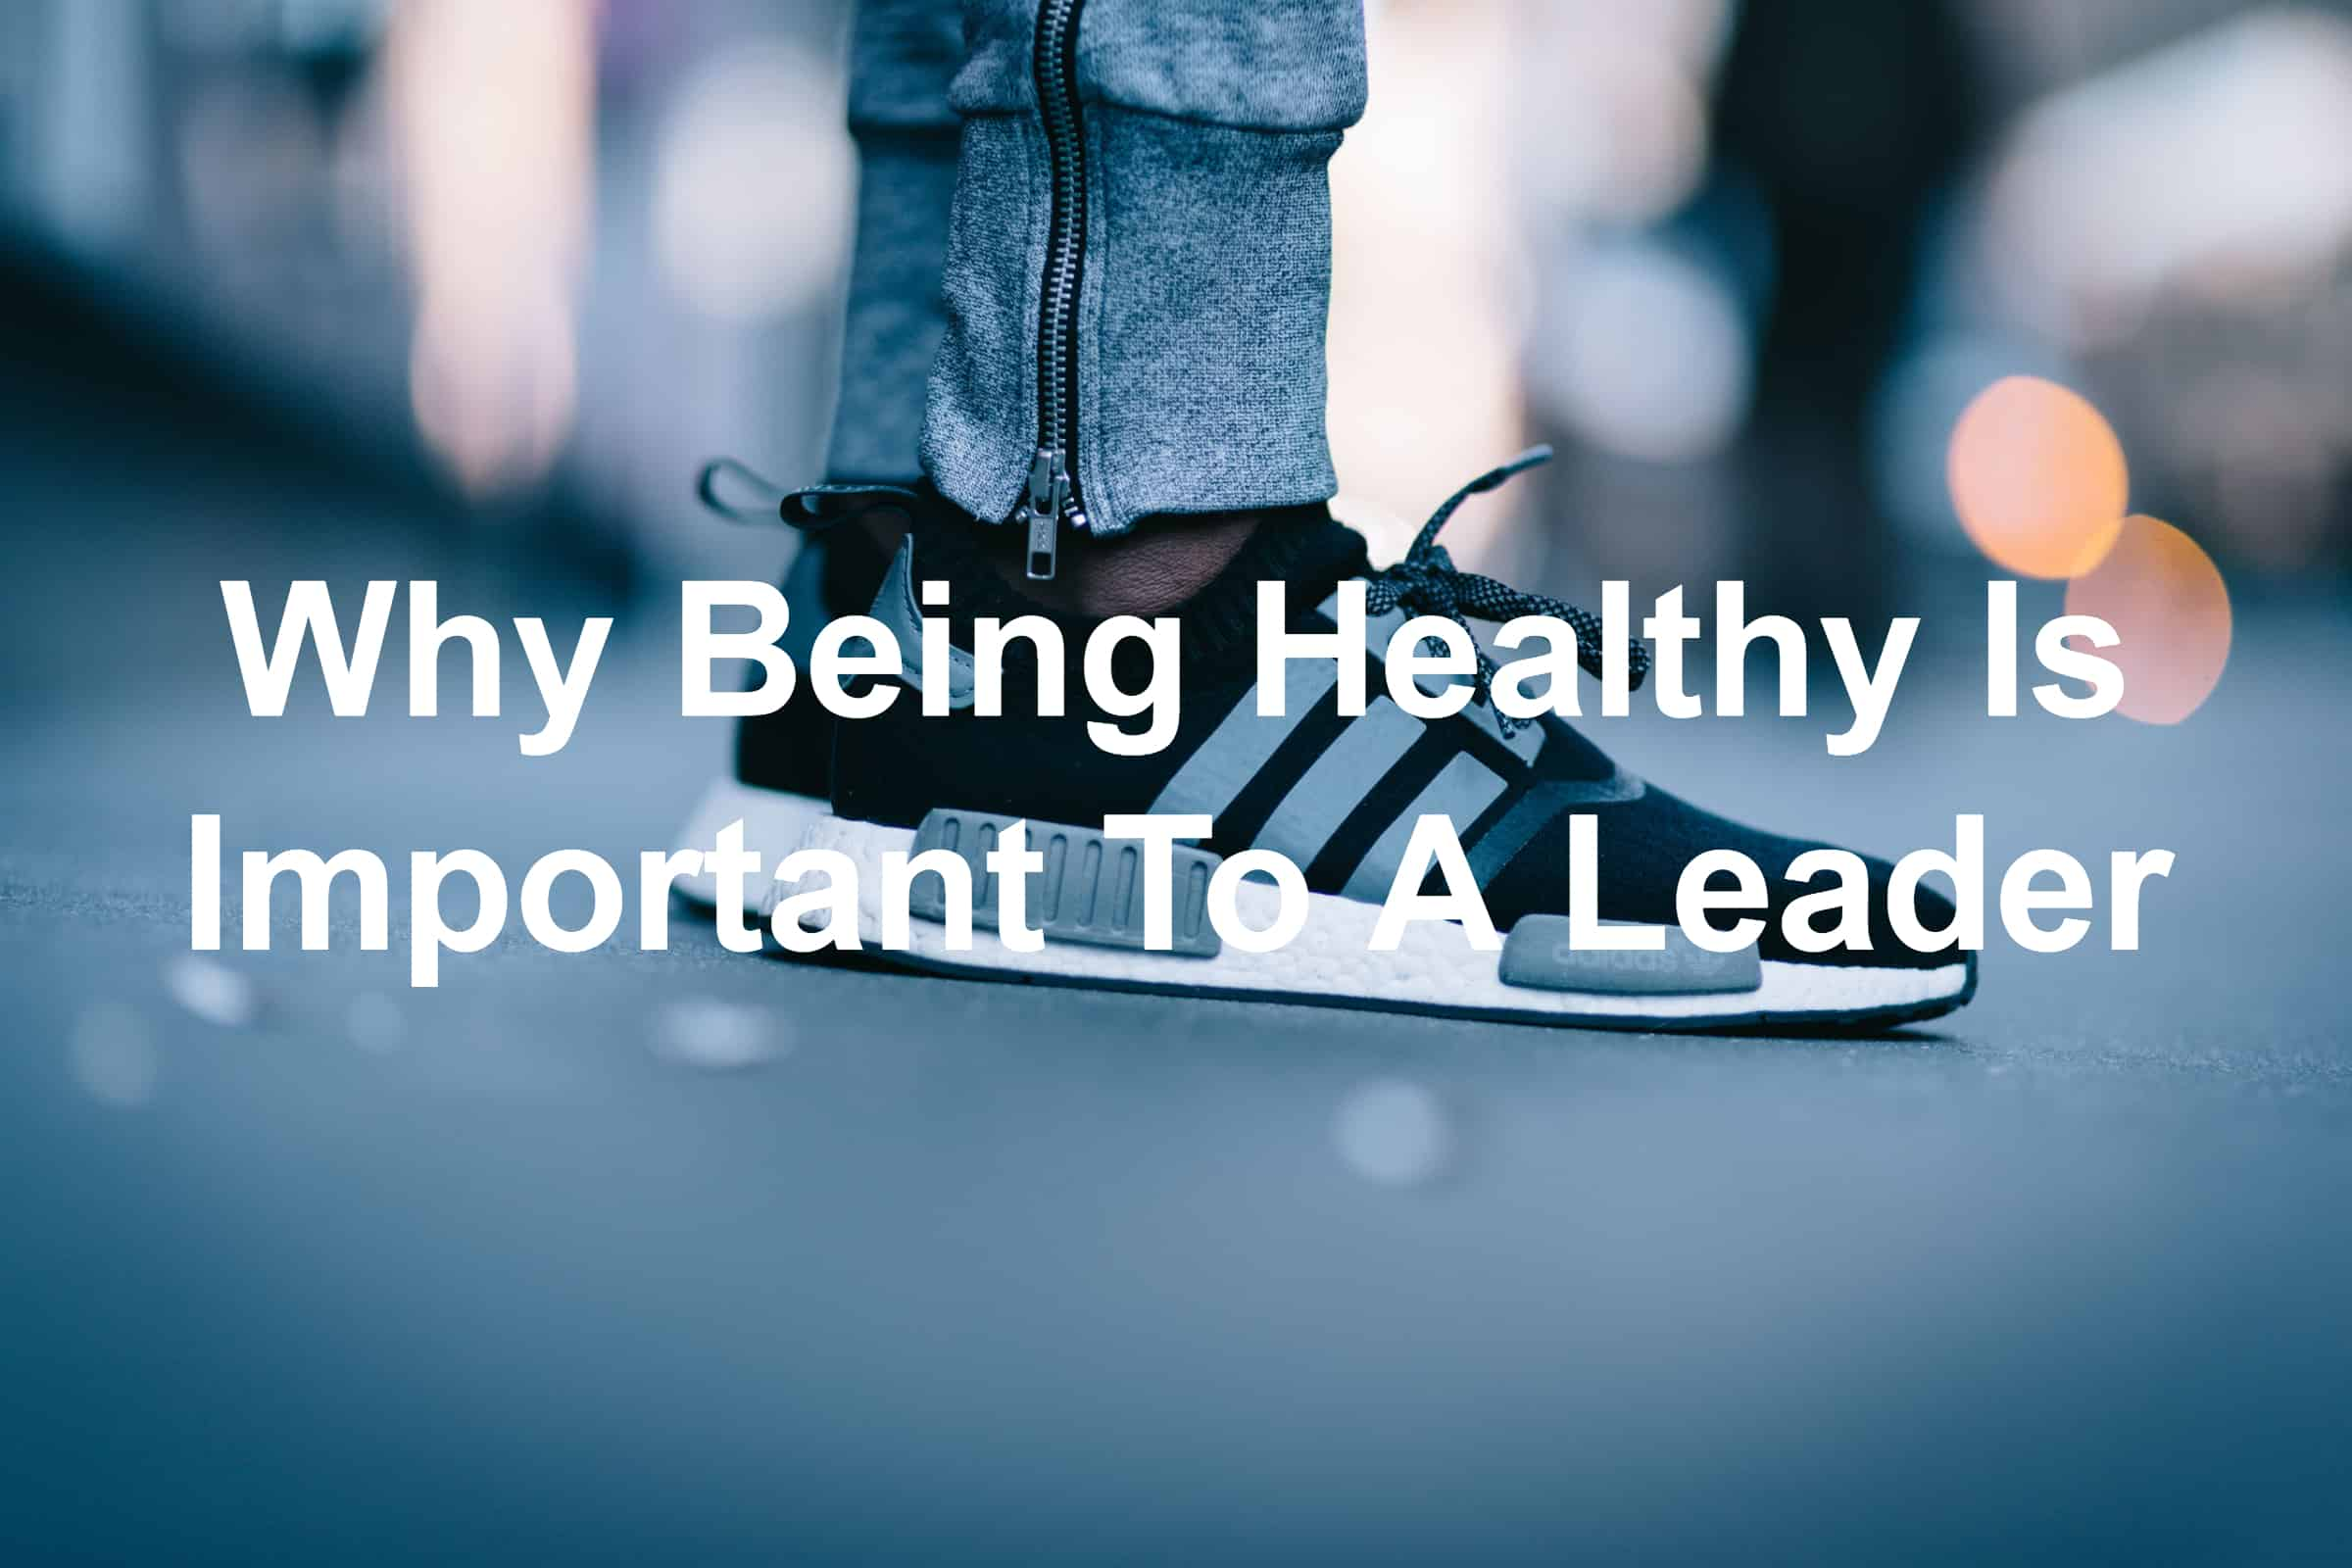 Become a fit leader